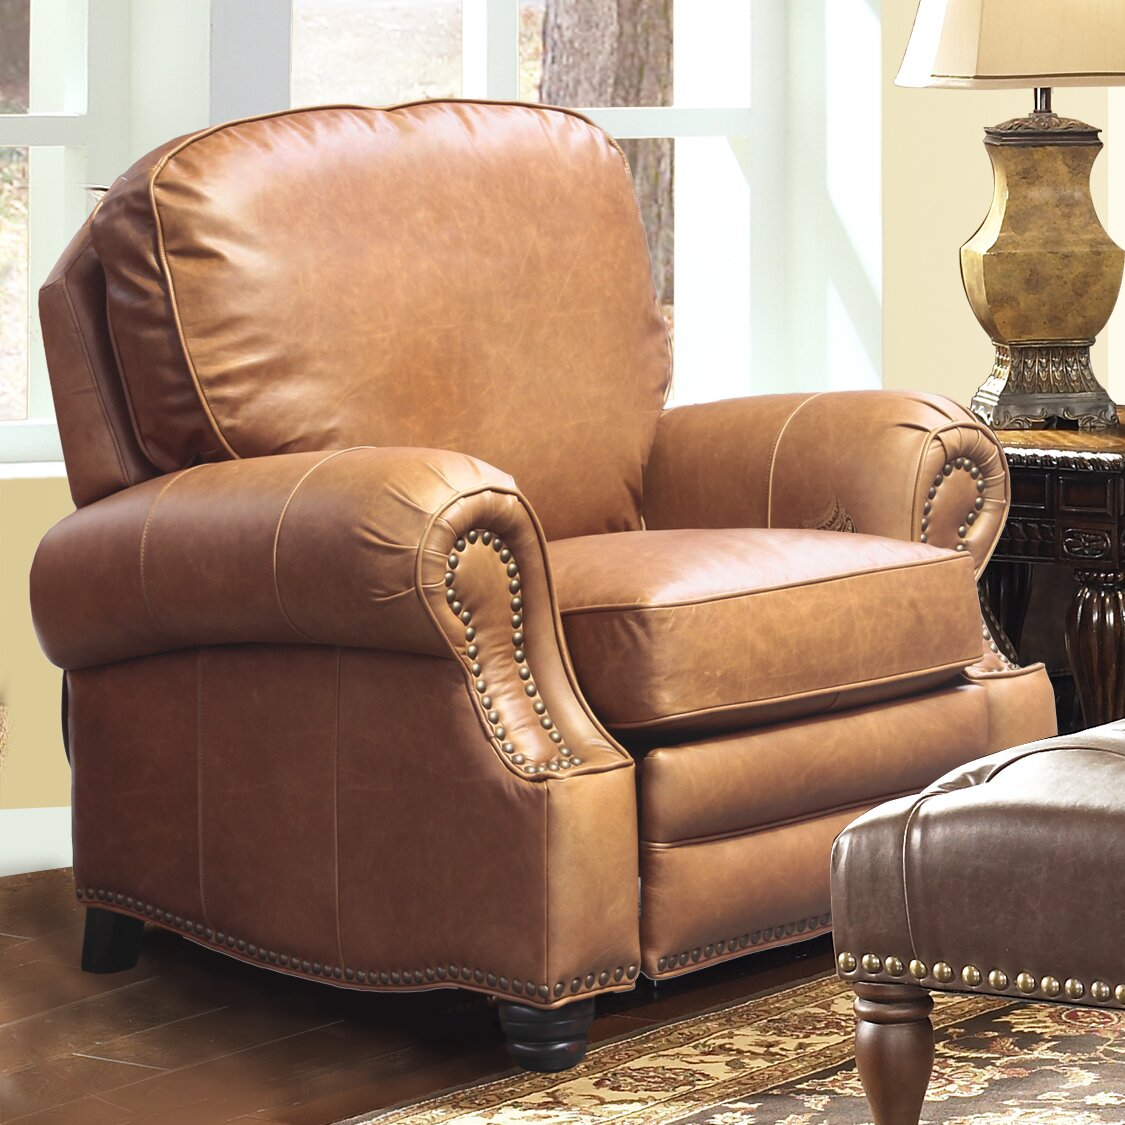 longhorn ii recliner - Swivel Recliner Chairs For Living Room 2